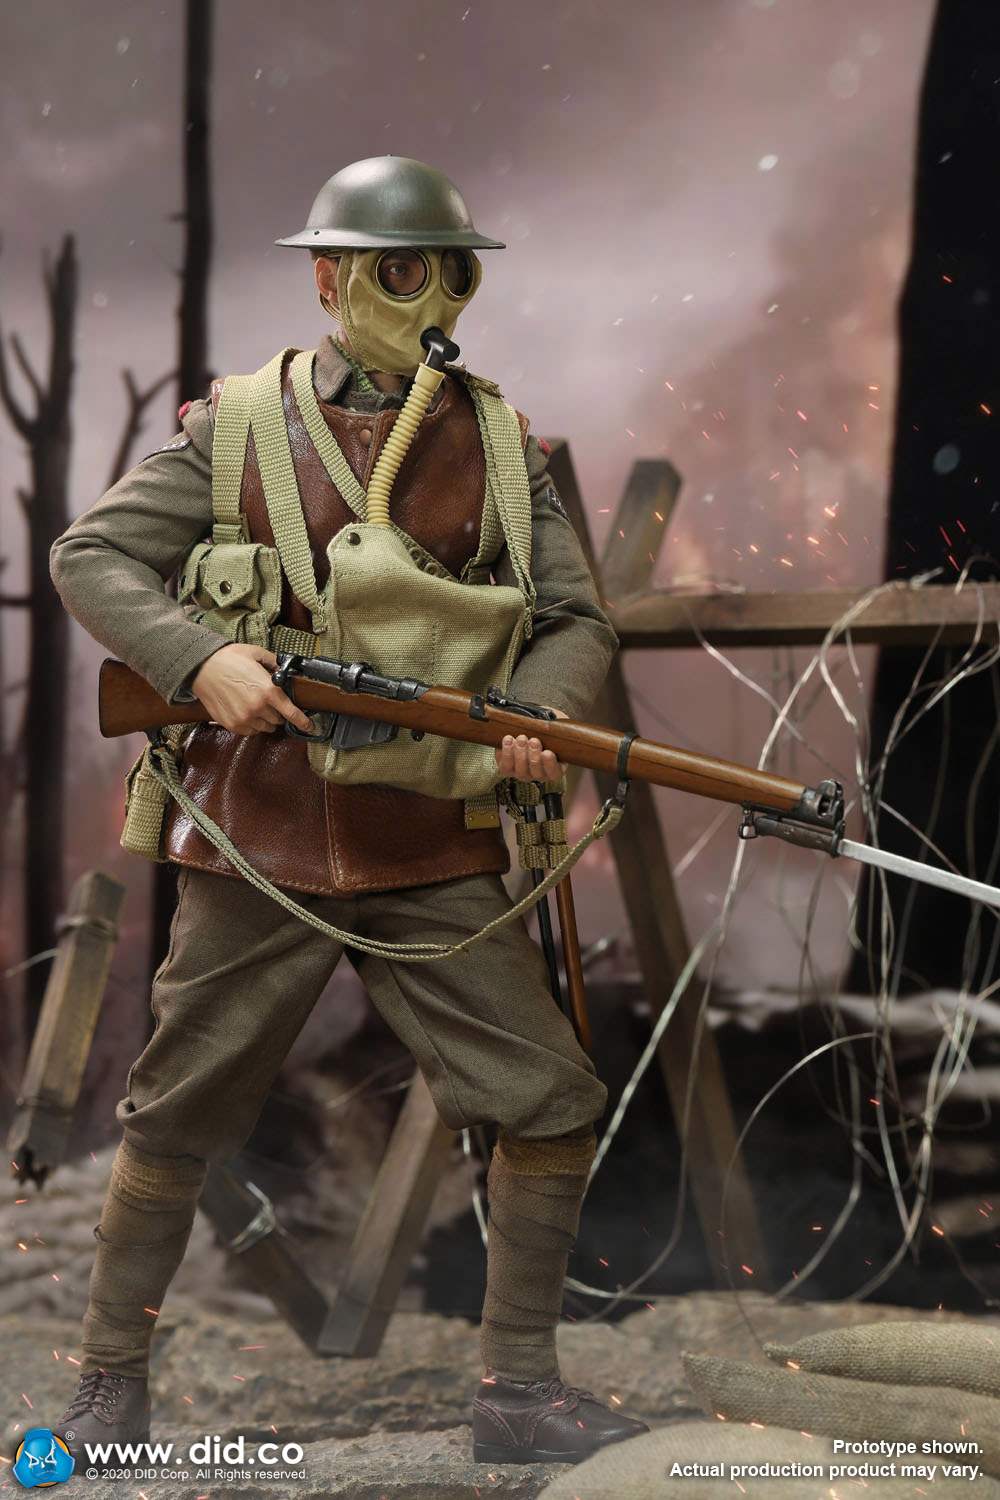 military - NEW PRODUCT: DiD: B11011 WWI British Infantry Lance Corporal William & Trench Diorama Set (UPDATED INFORMATION) 924a7610